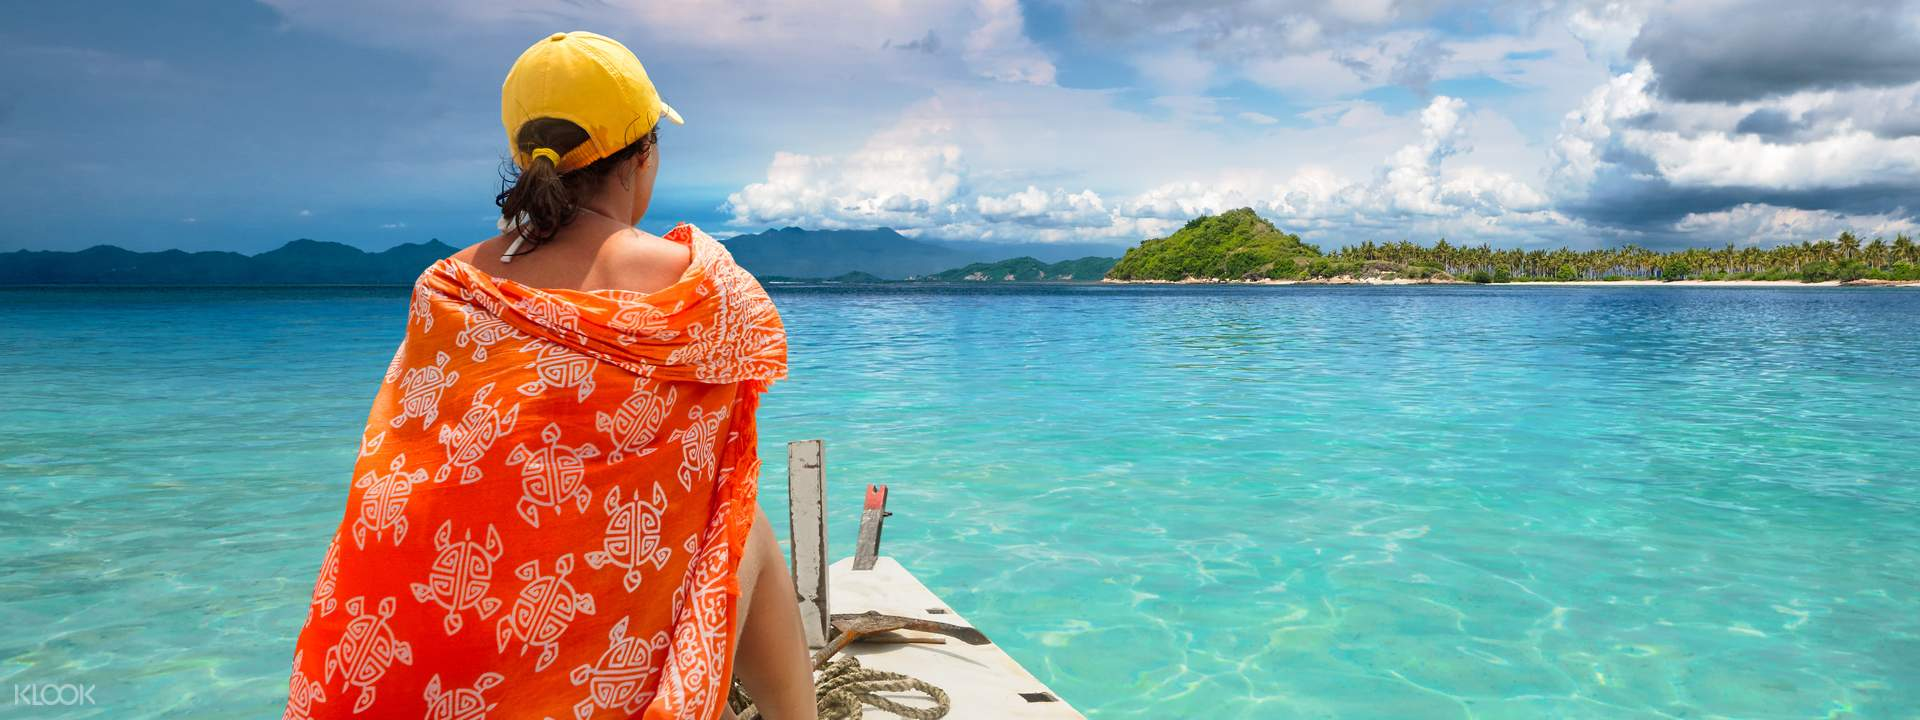 Gili Islands Day Trip on Private Boat - Klook